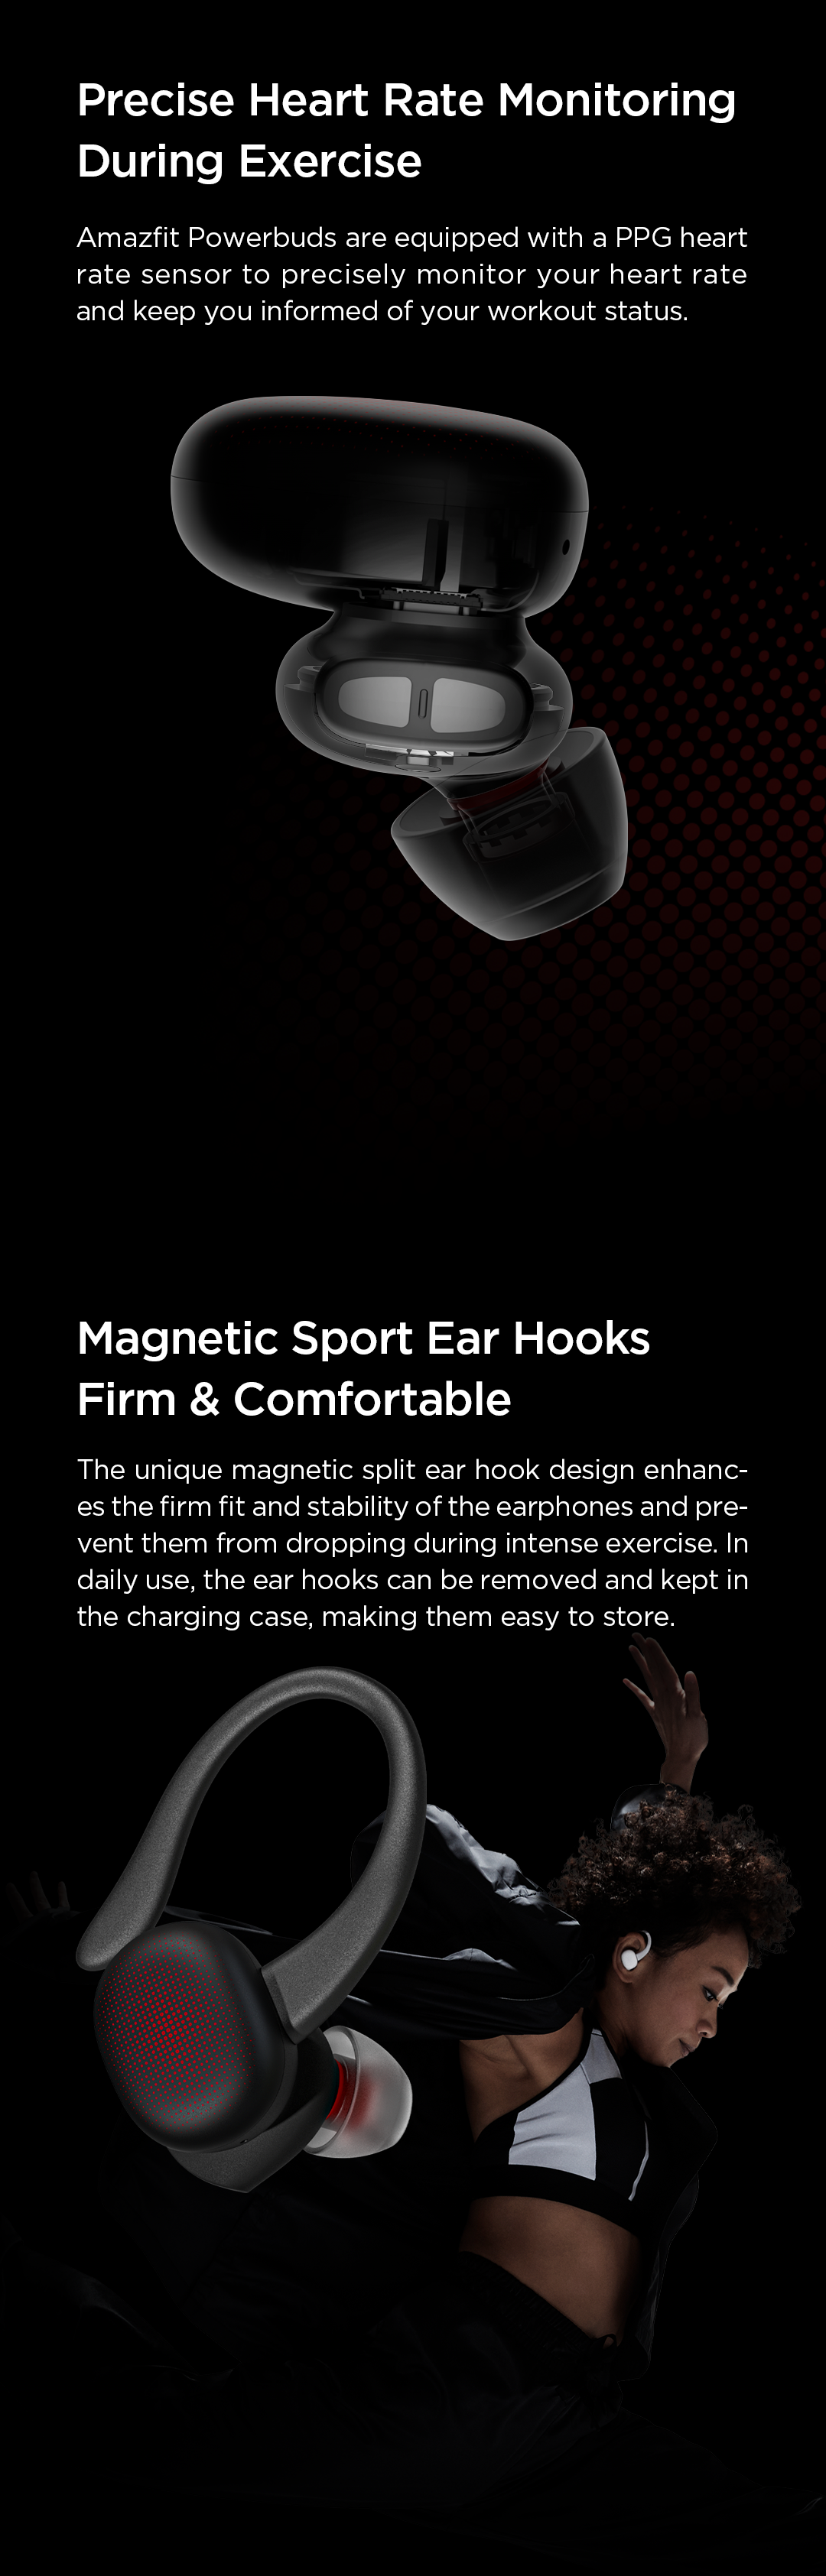 Amazfit PowerBuds True Wireless Earbuds 6